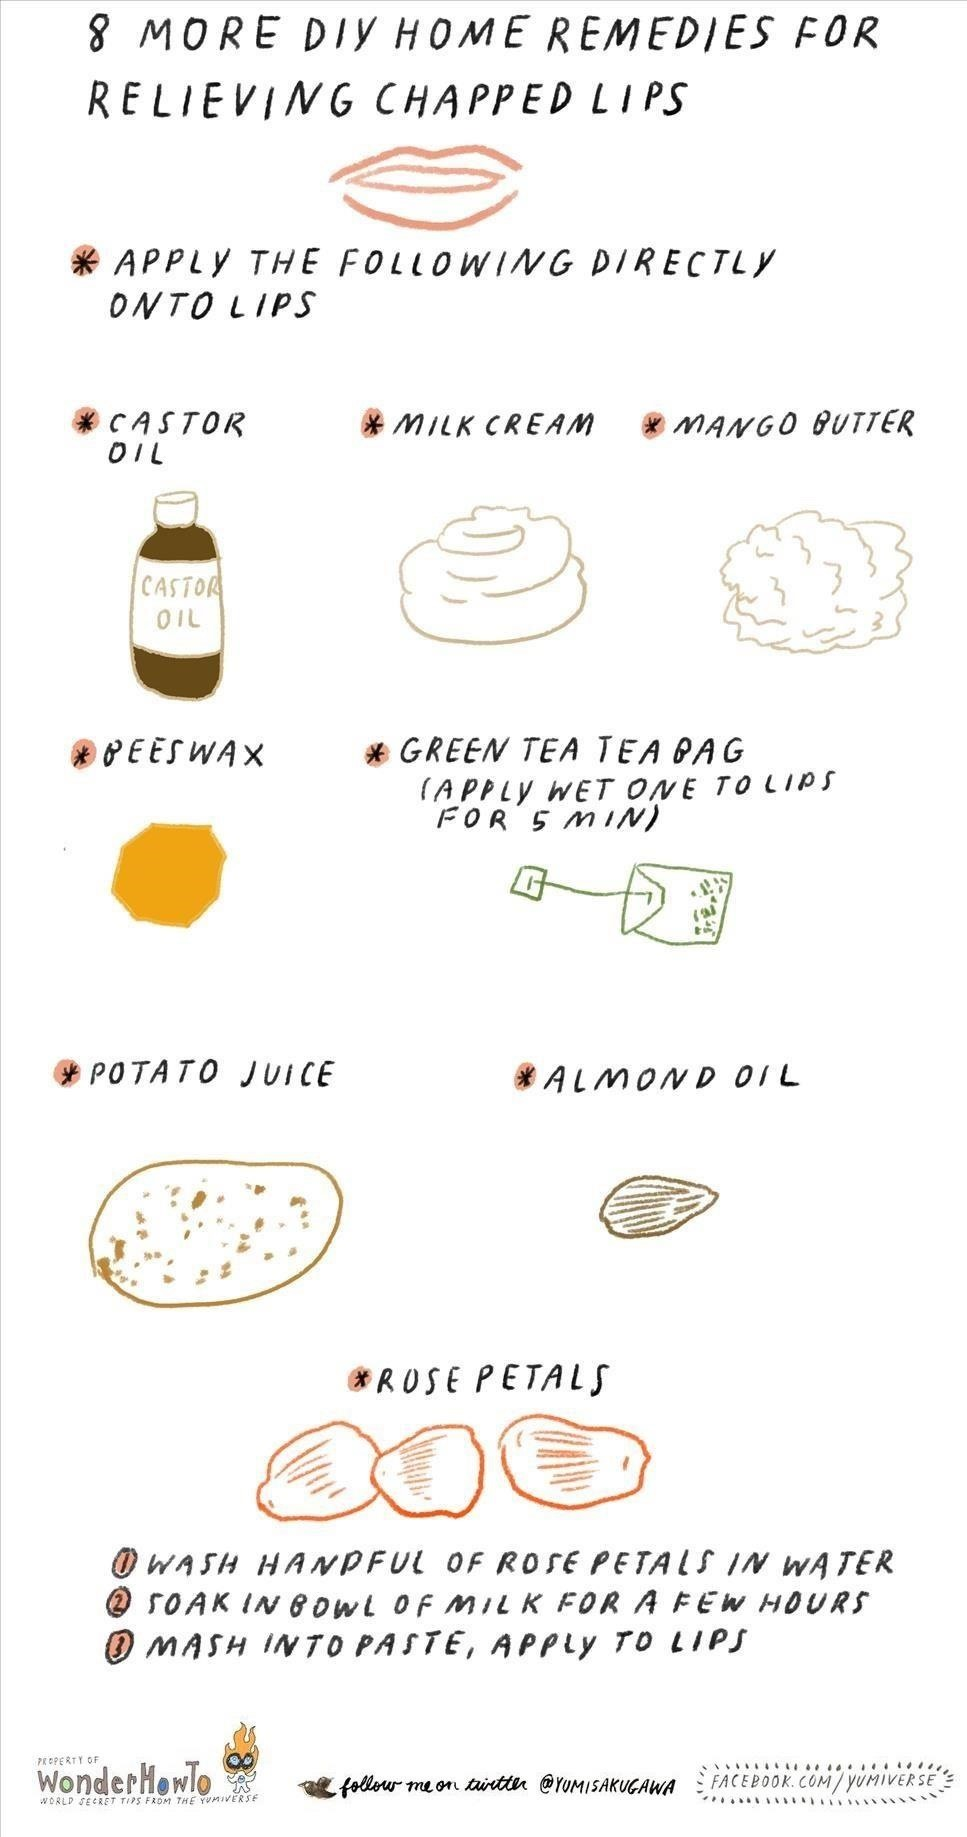 8 More DIY Home Remedies for Relieving Chapped Lips